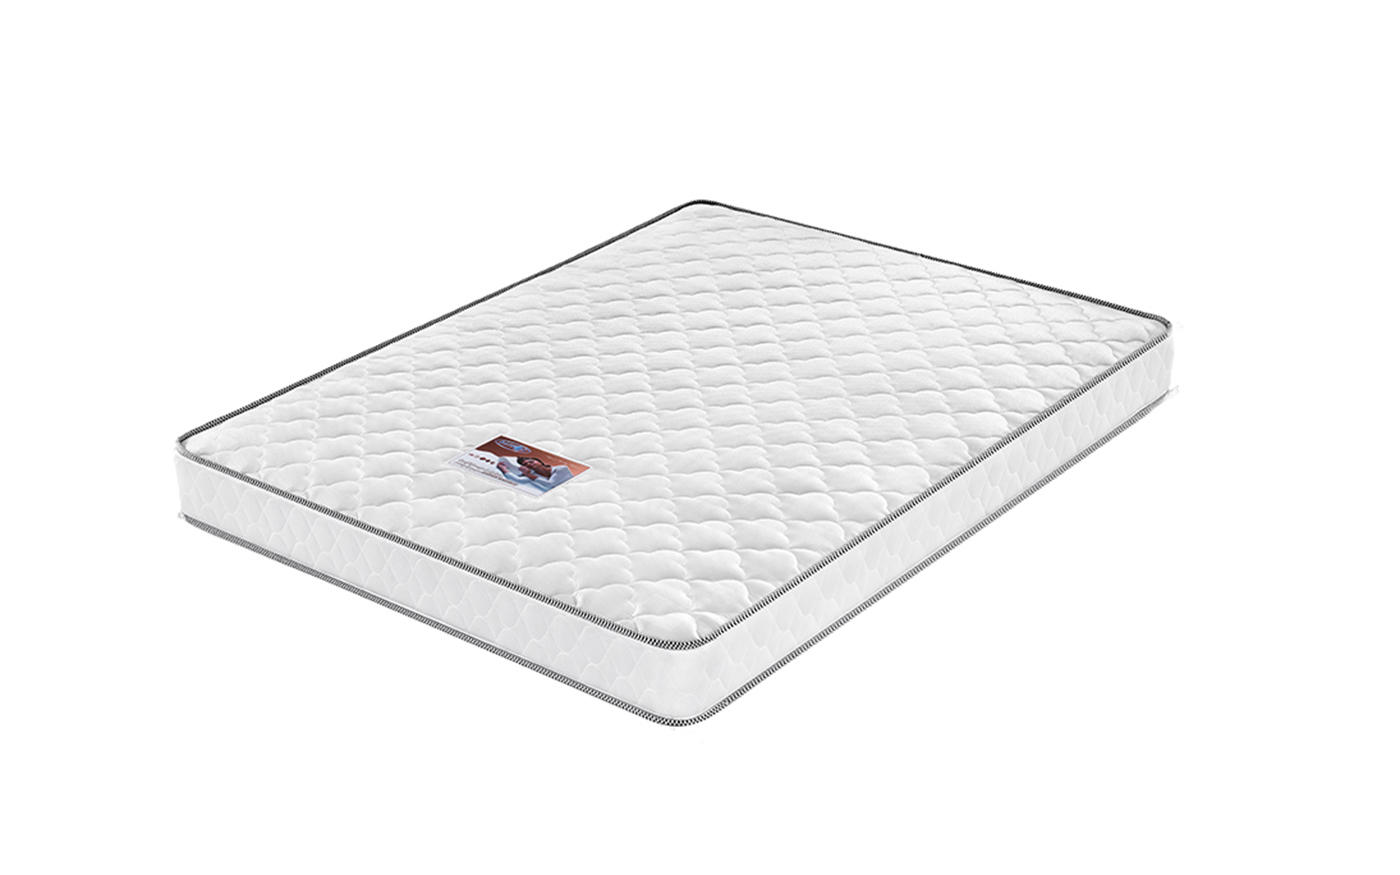 custom roll out memory foam mattress at discount at discount Rayson